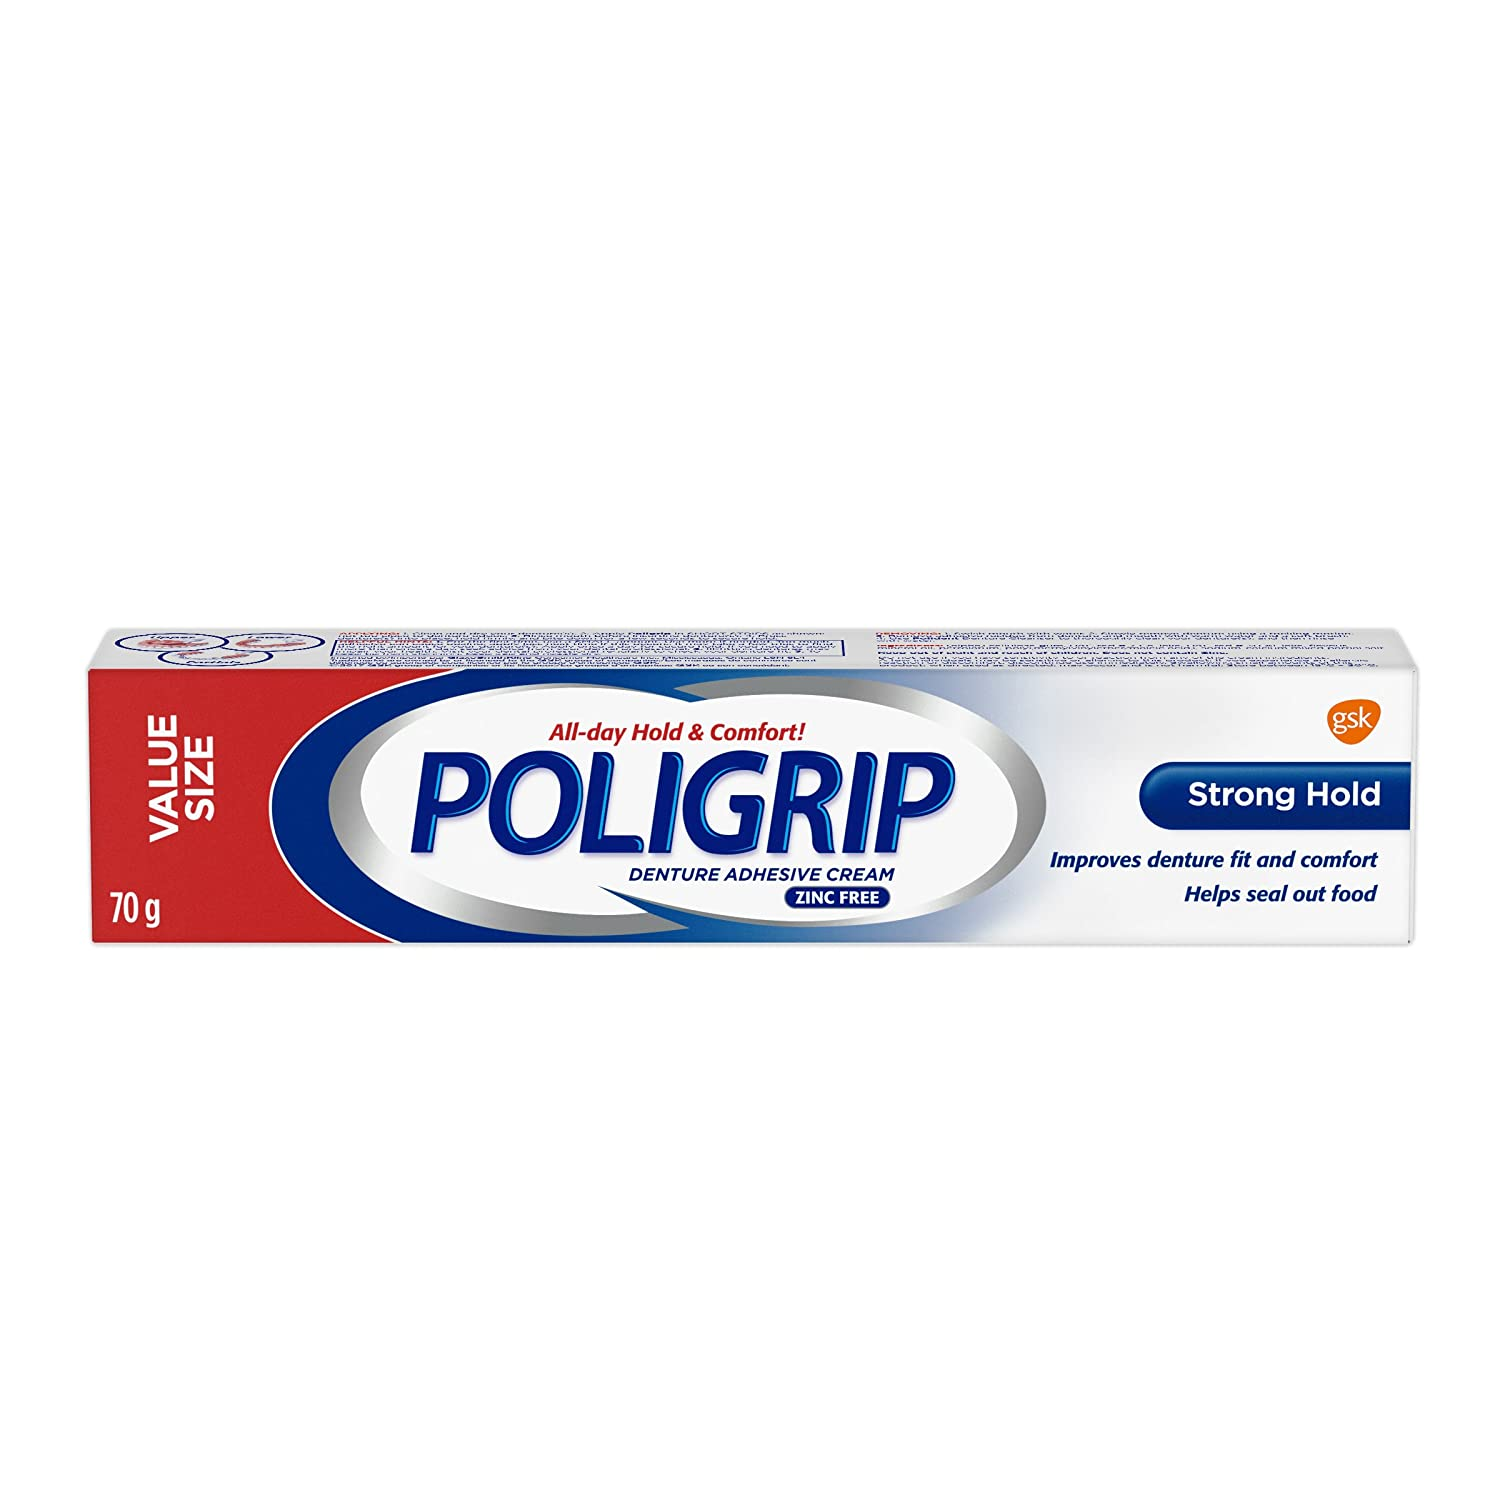 Poligrip Strong Hold Denture Adhesive Cream, 70g GSK Consumer Healthcare